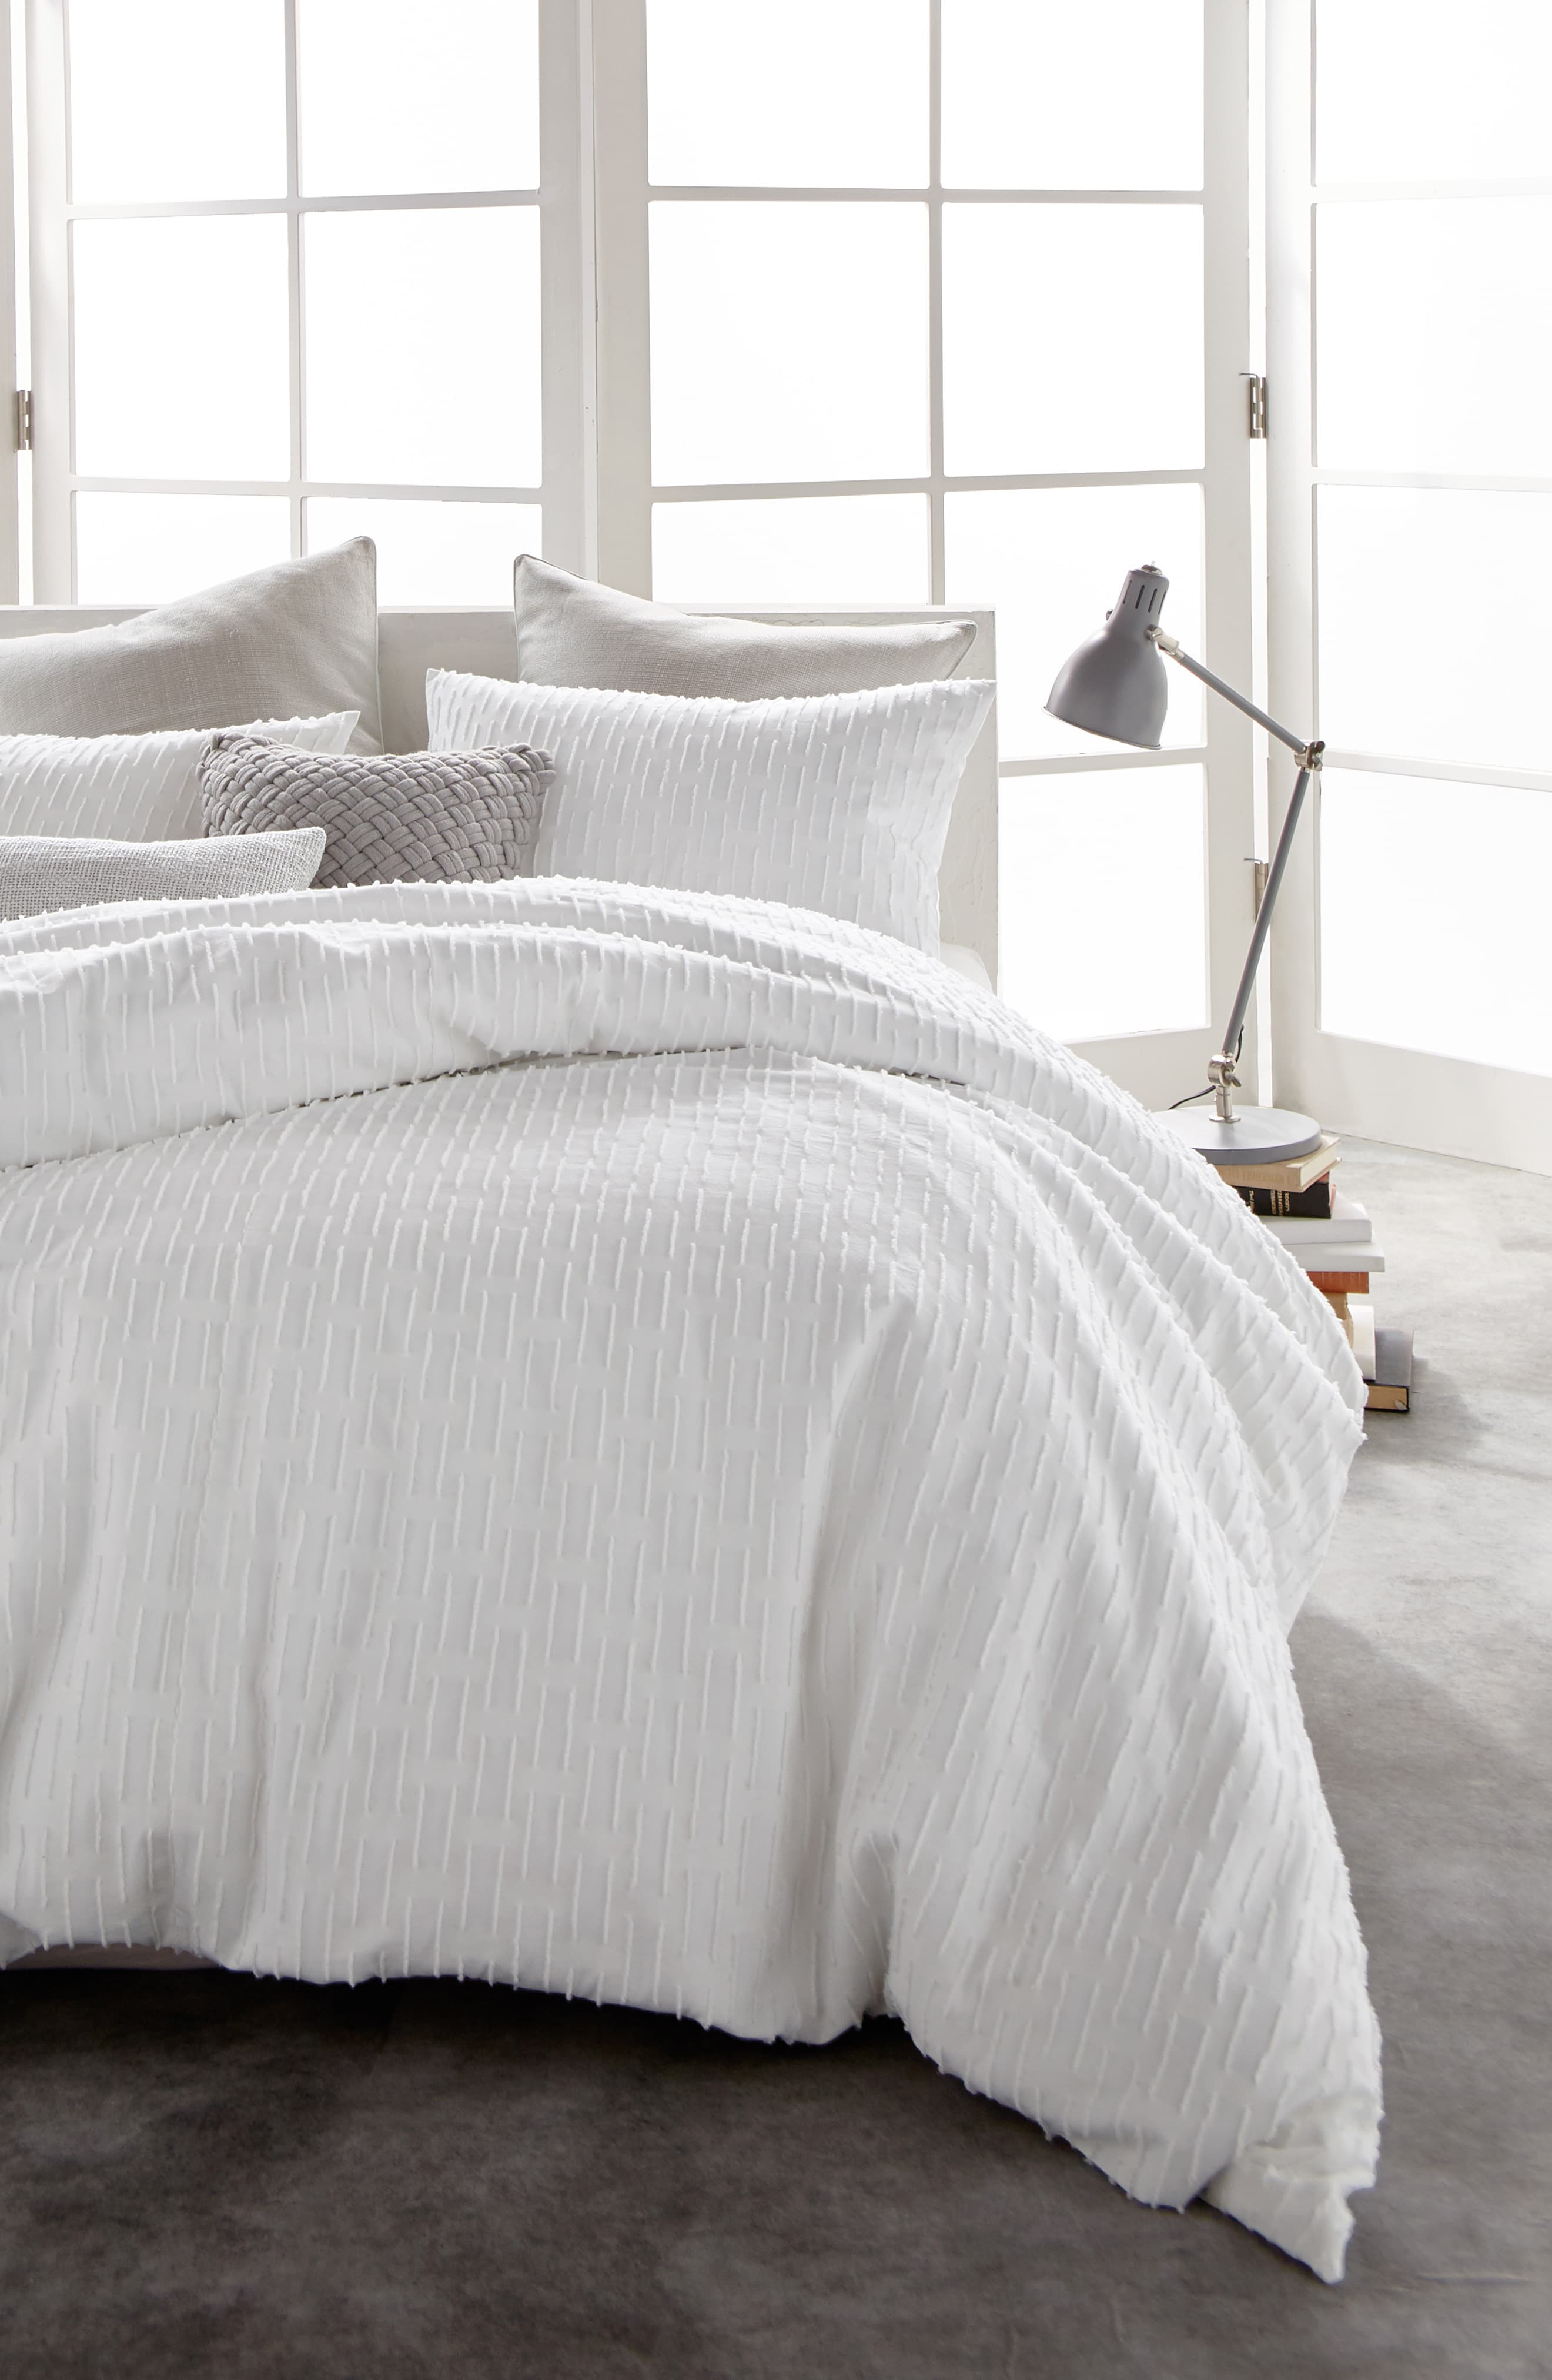 Dkny Refresh Cotton Duvet Cover Size Full Queen White Cotton